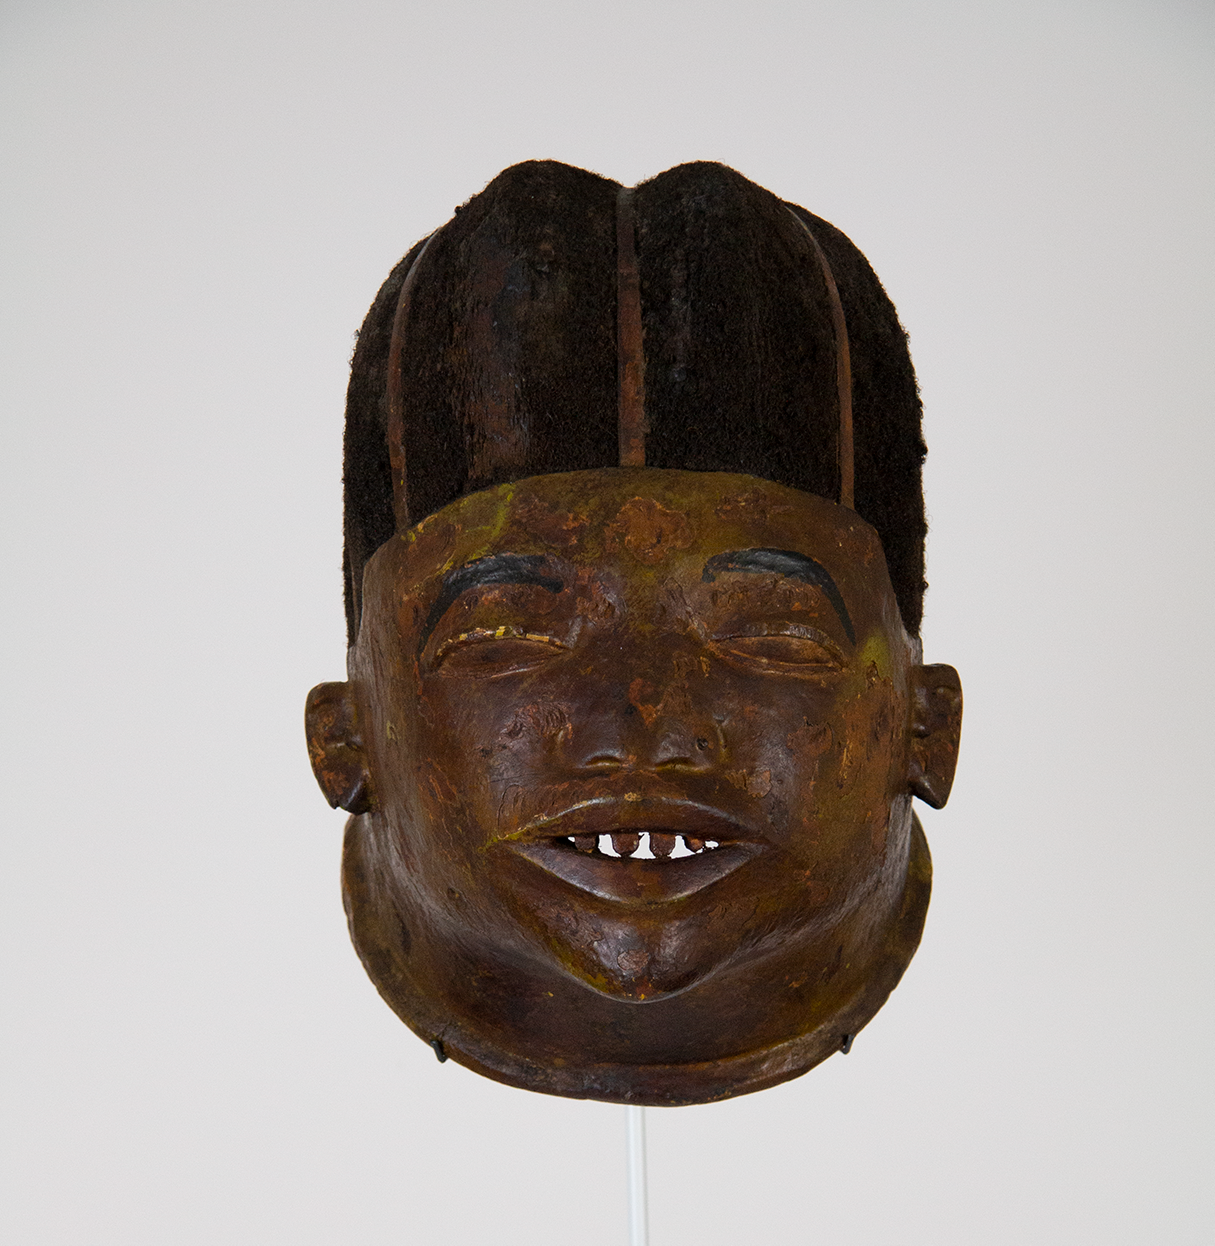 Wooden mask that resembles a wide-faced man with hair and a cap or crown. The face of the mask is painted yellow and the paint is chipped. You can see light through the mouth, which has carved teeth.